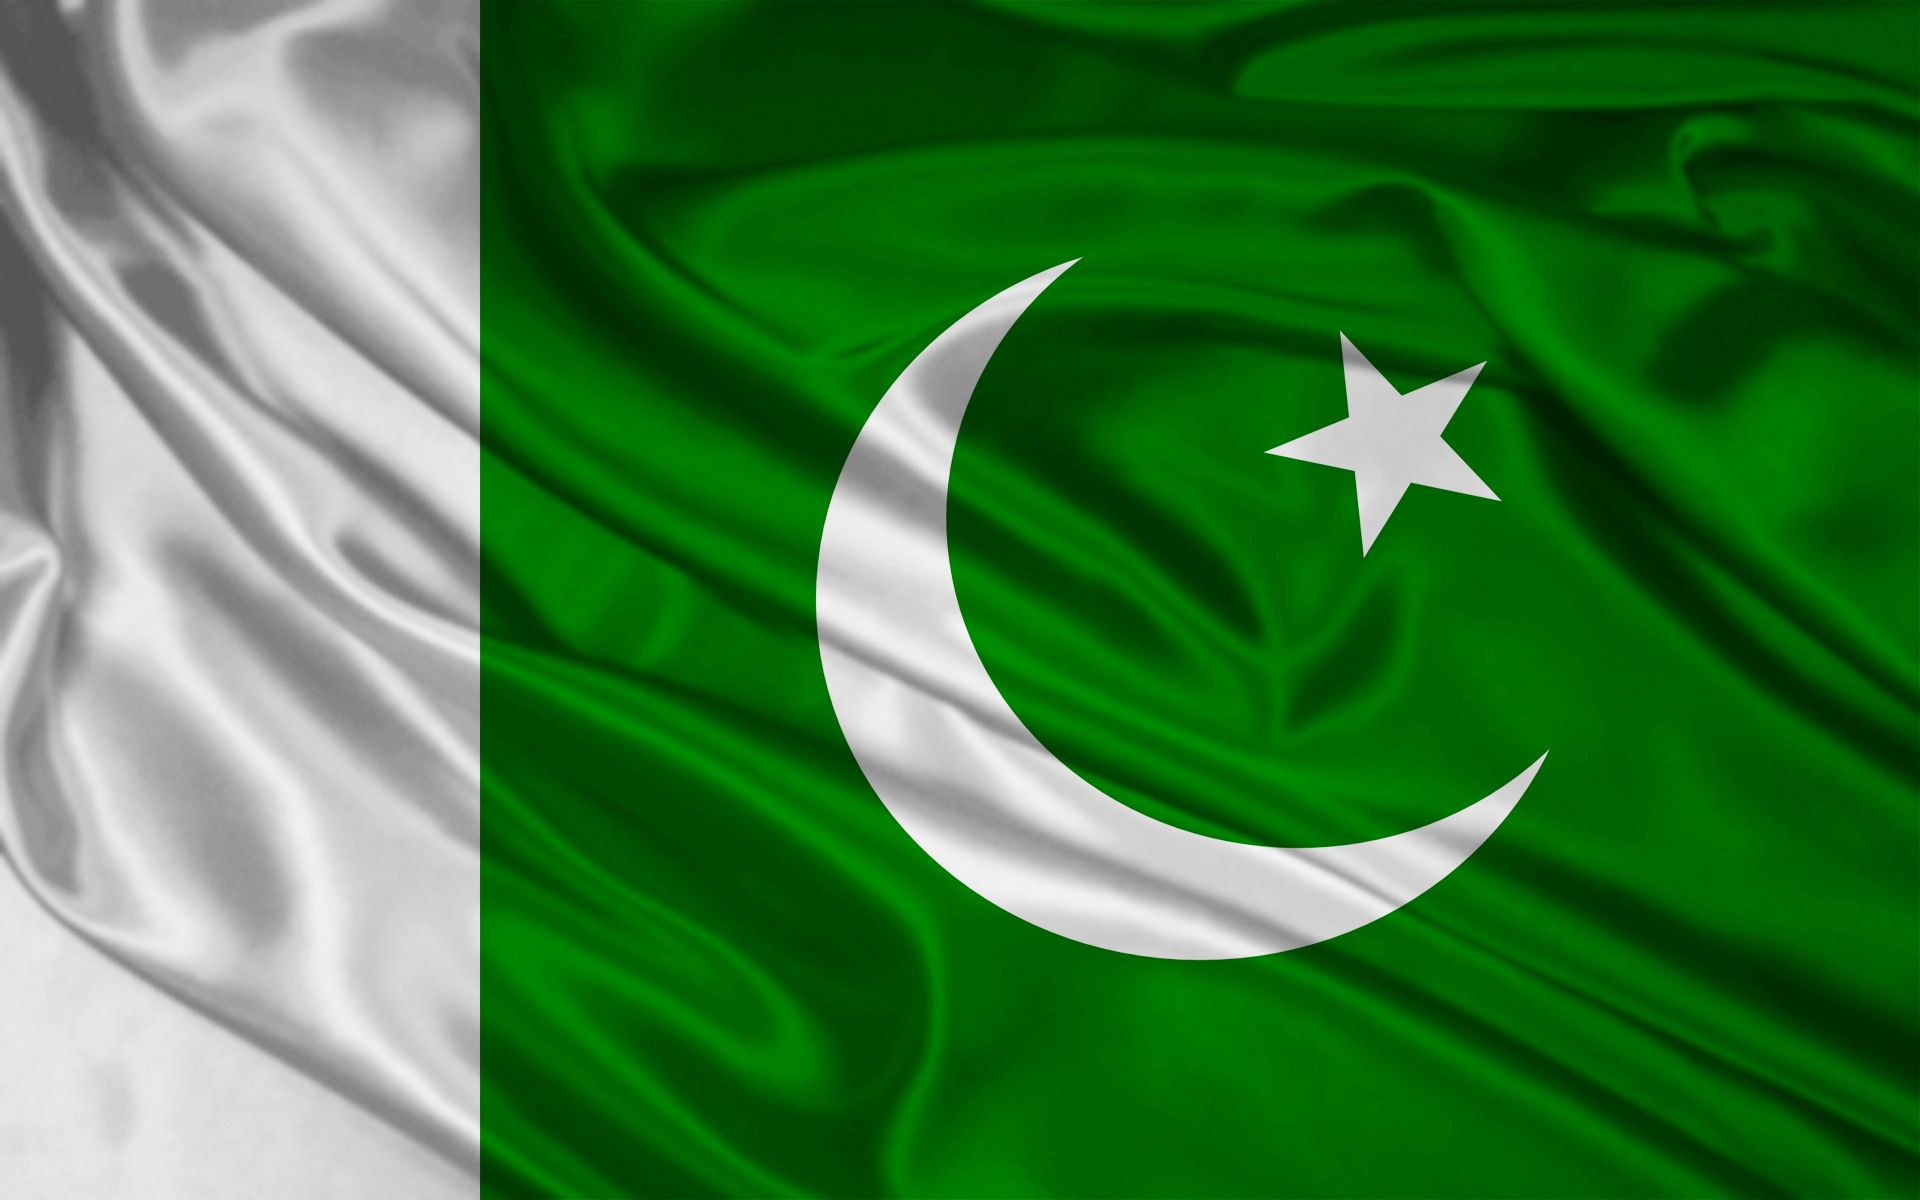 Pakistan Flag Wallpaper Jpg 1920 1200 Pakistani Flag Pakistan Flag Pakistan Flag Wallpaper